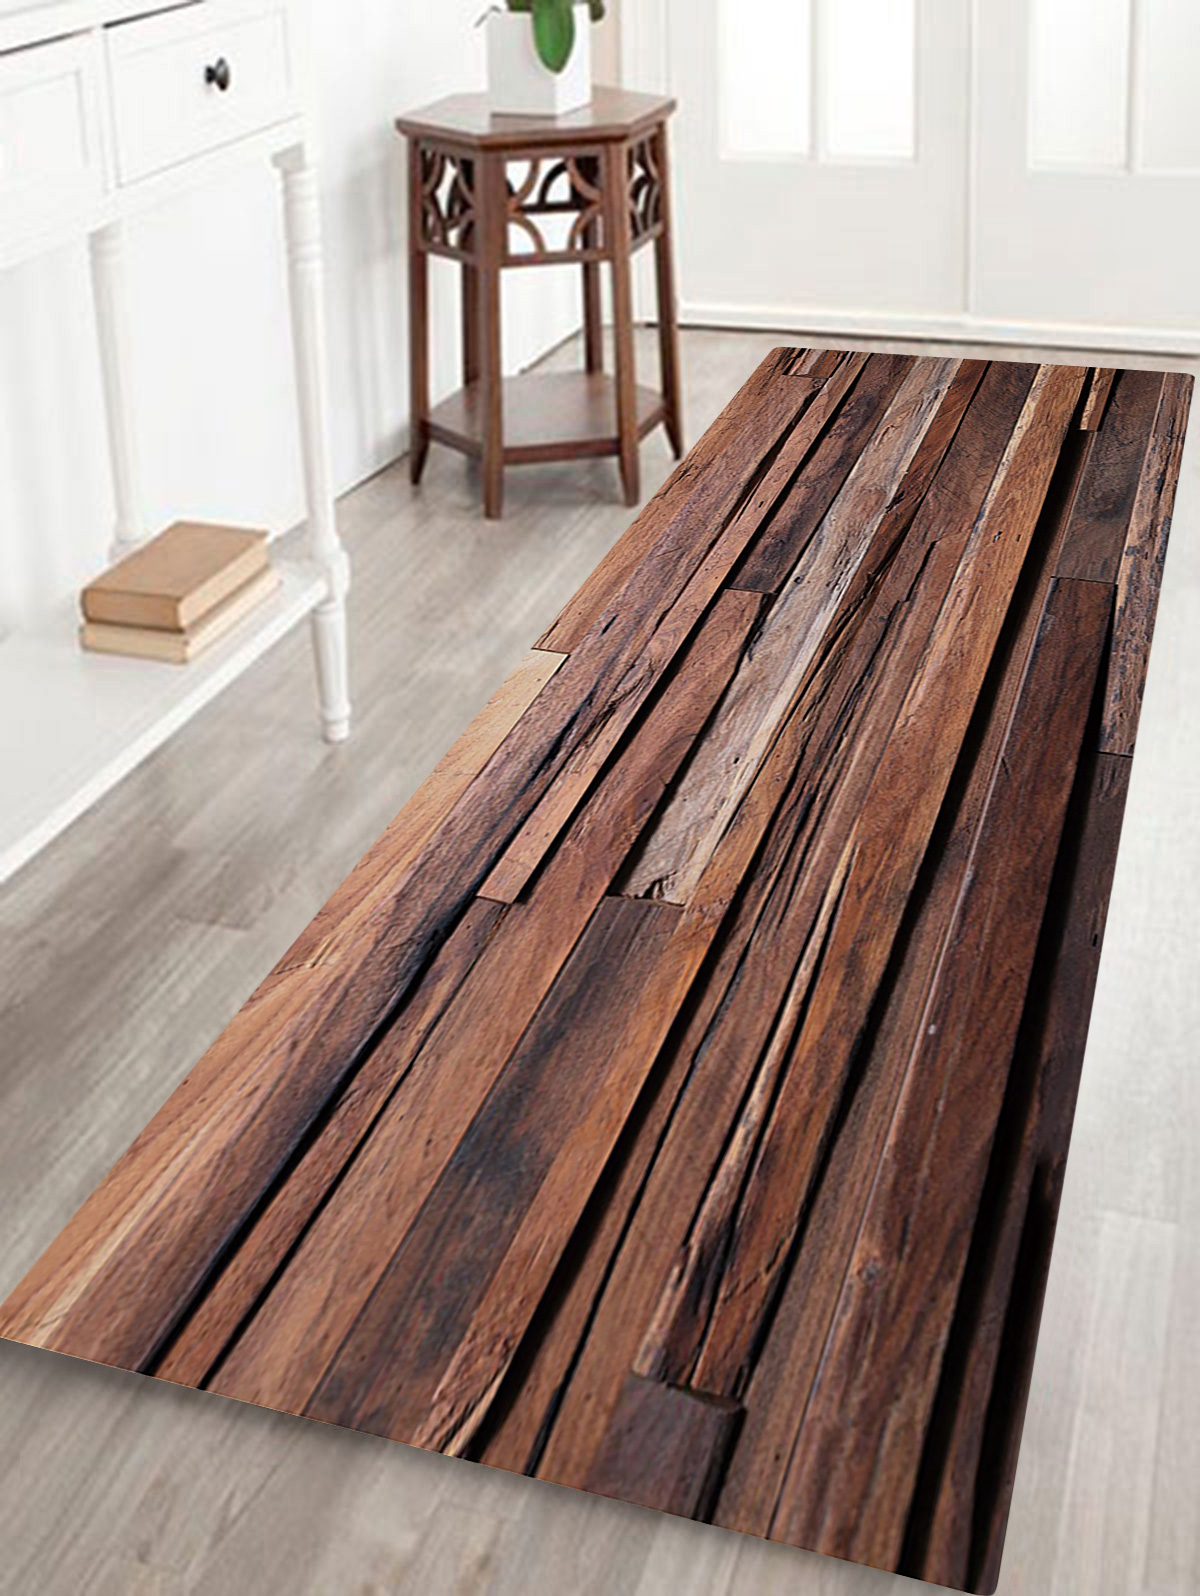 Details About Joint Wood Board Pattern Non Slip Floor Area Rug Runners Rectangle Living Room